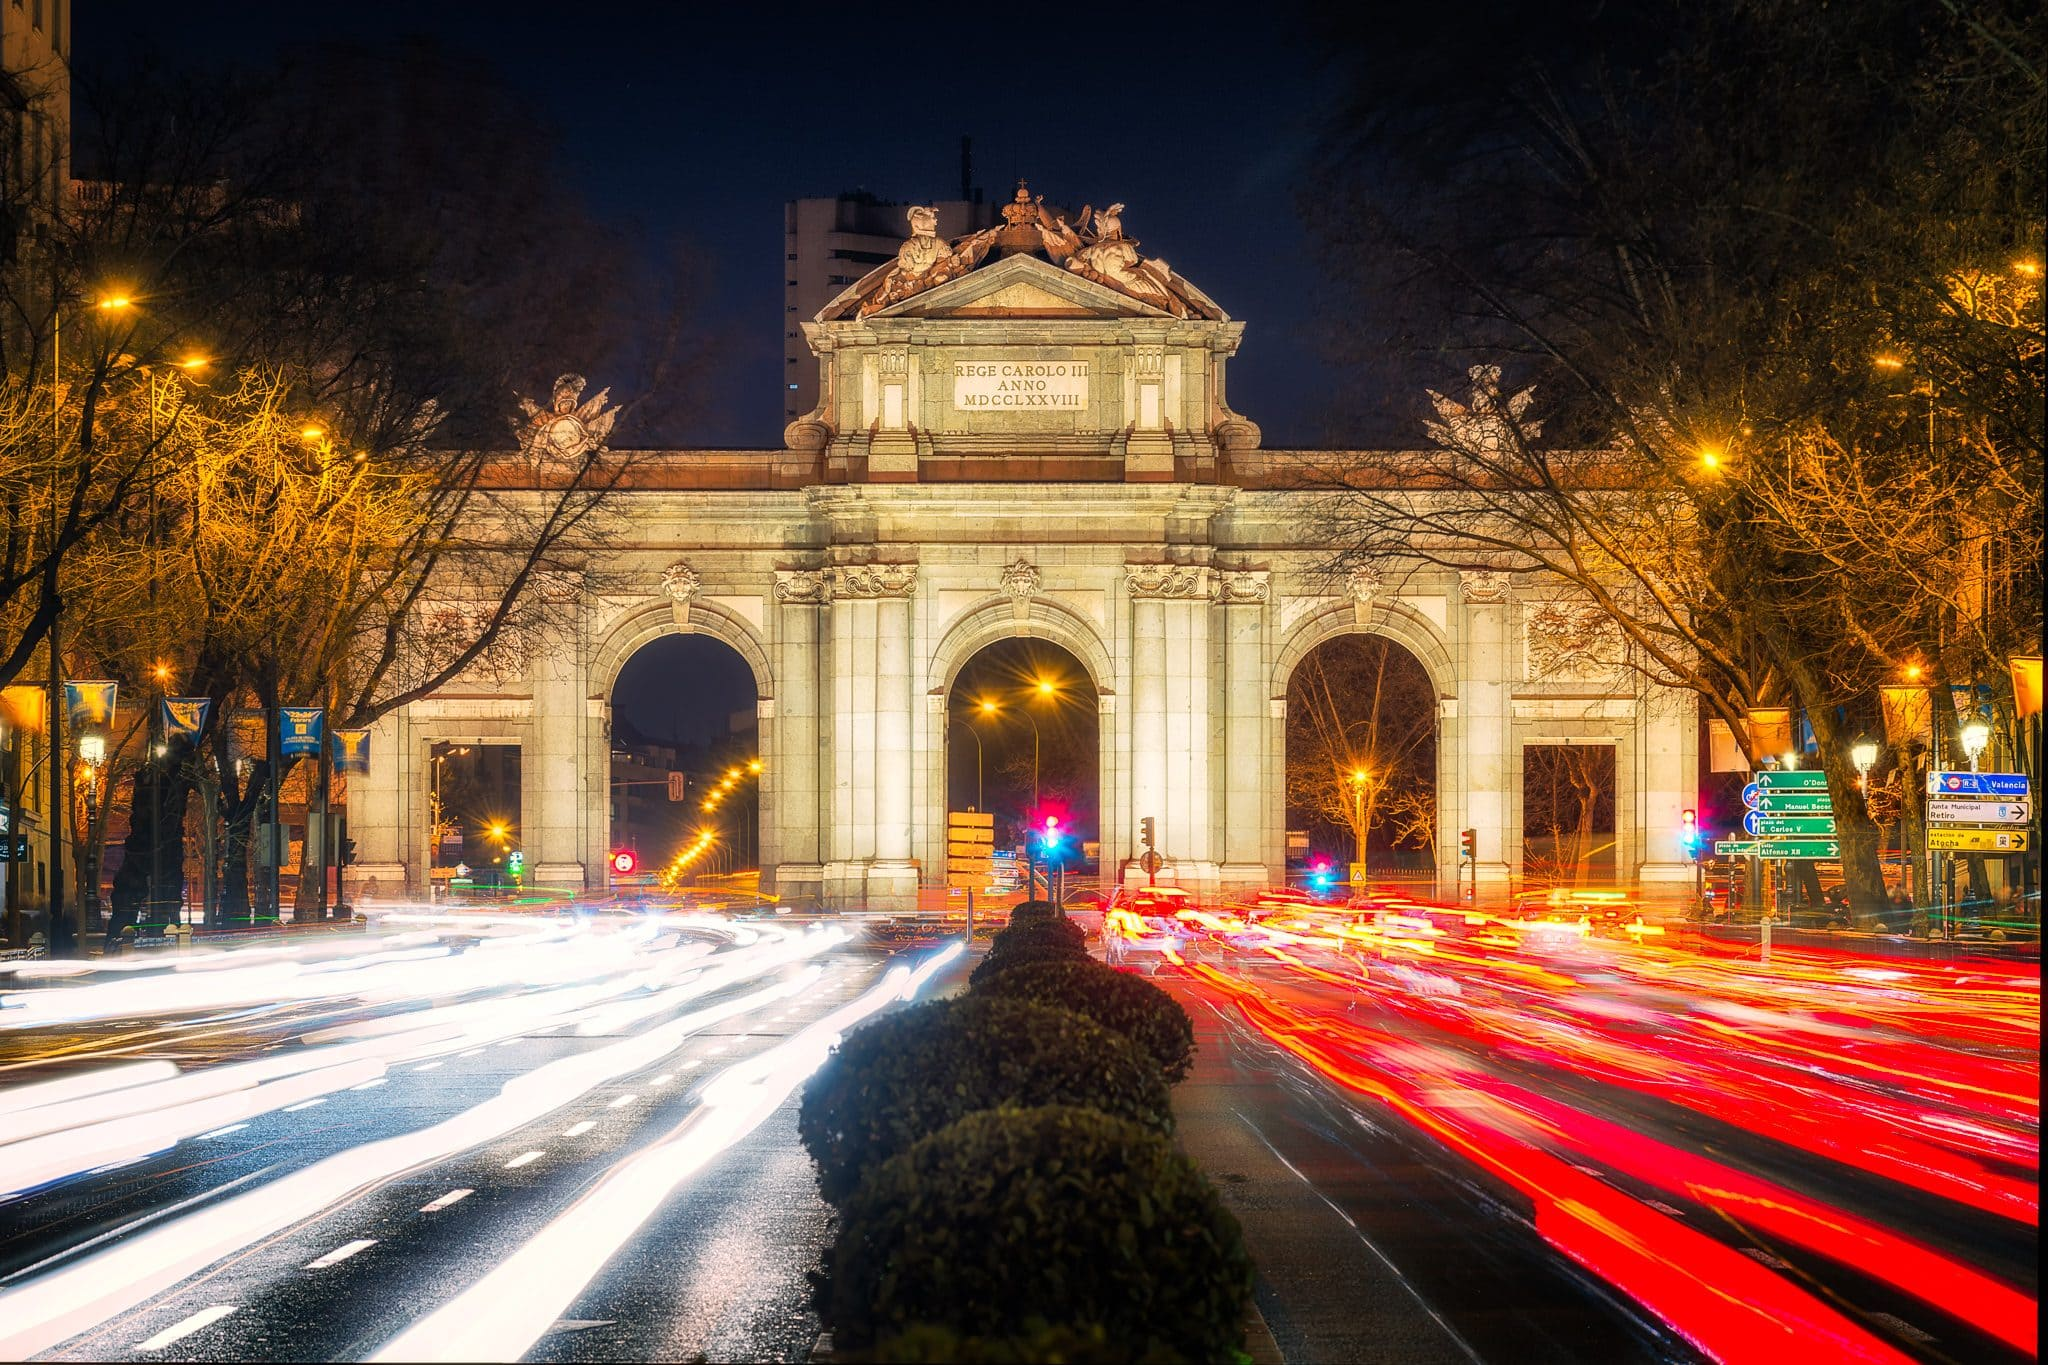 Puerta de Alcalá – A night shot with car light trails in Madrid, Spain.